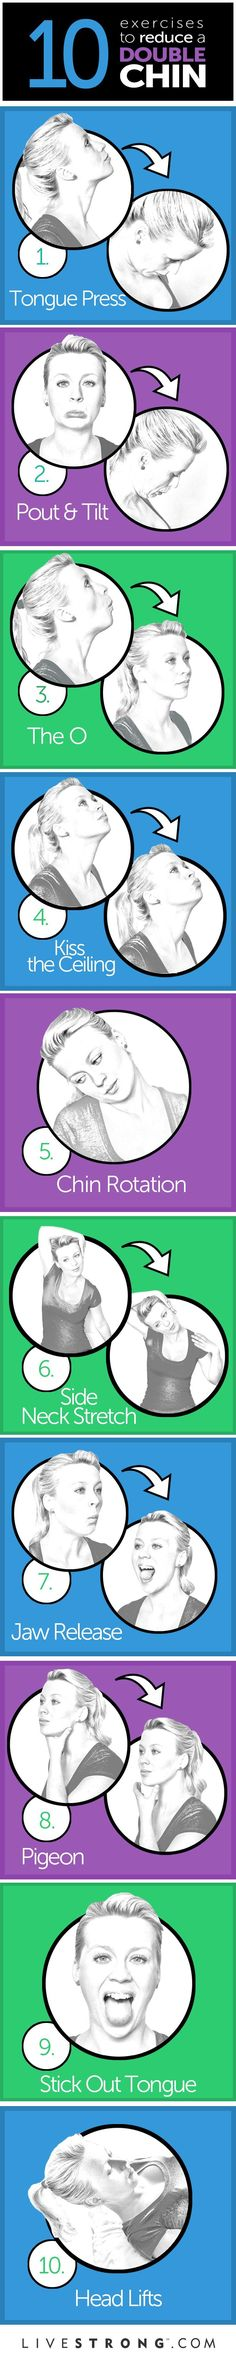 WE HEART IT: 10 Best Exercises to Reduce a Double Chin